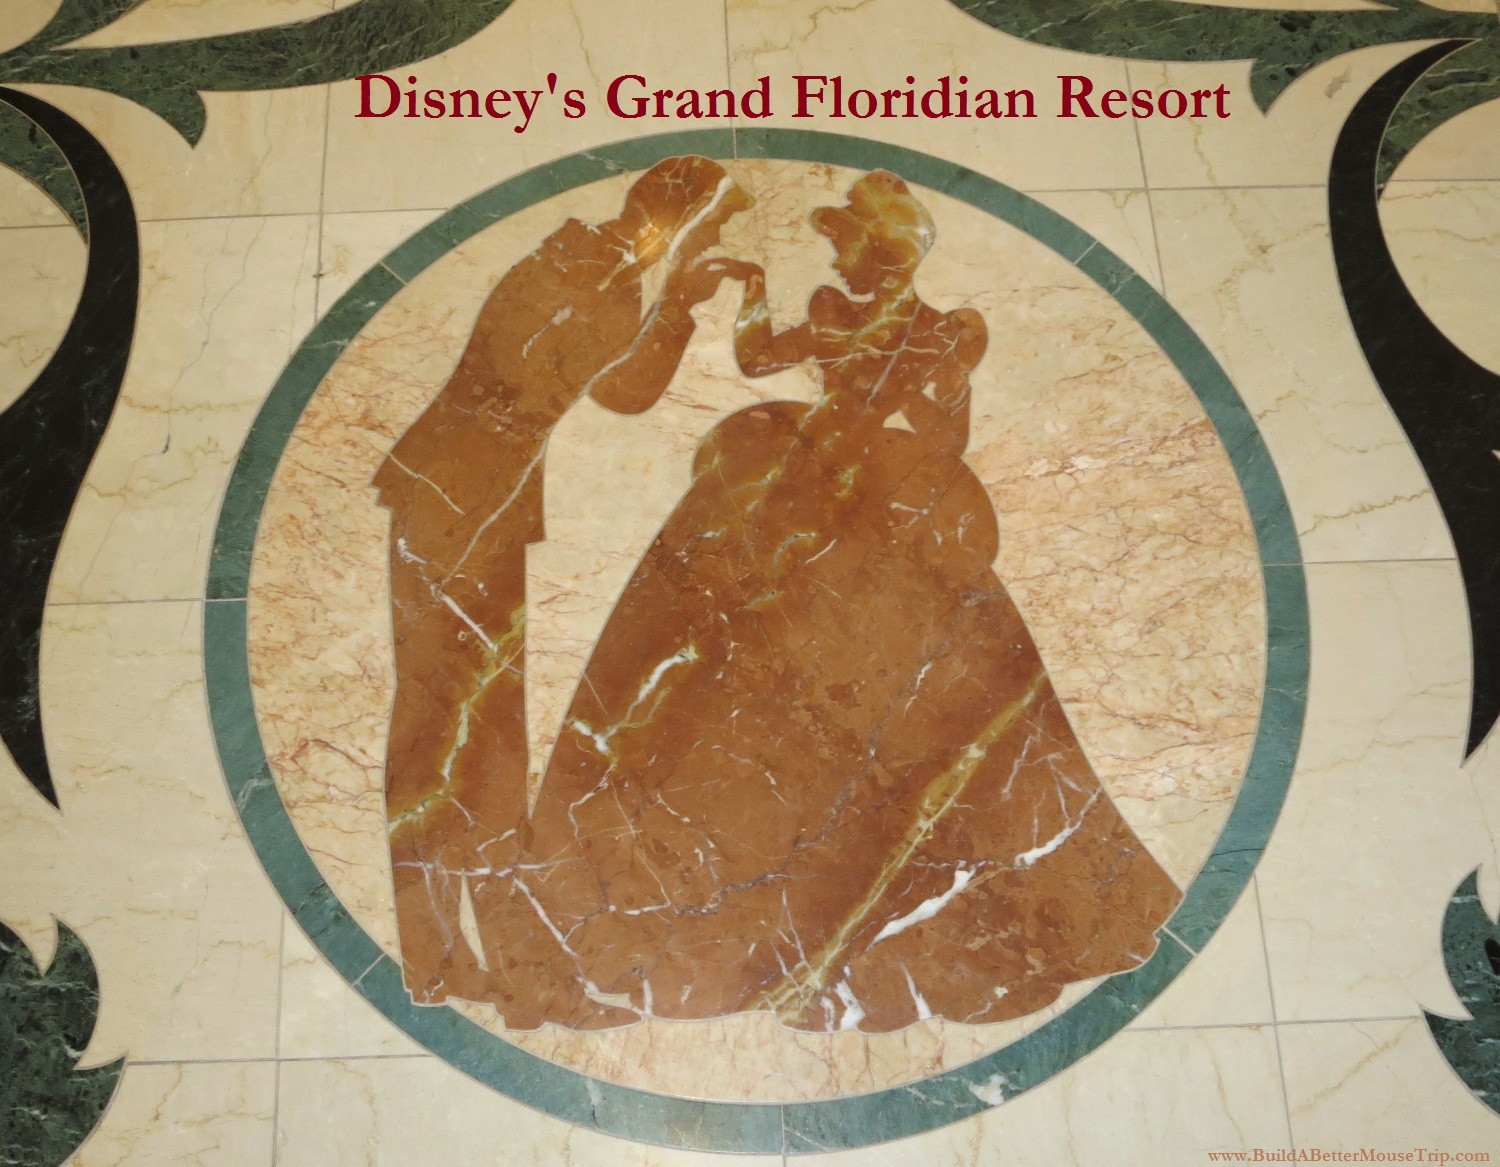 Cinderella & Prince Charming in the marble inlaid floors at Disney's Grand Floridian Resort at Disney World.